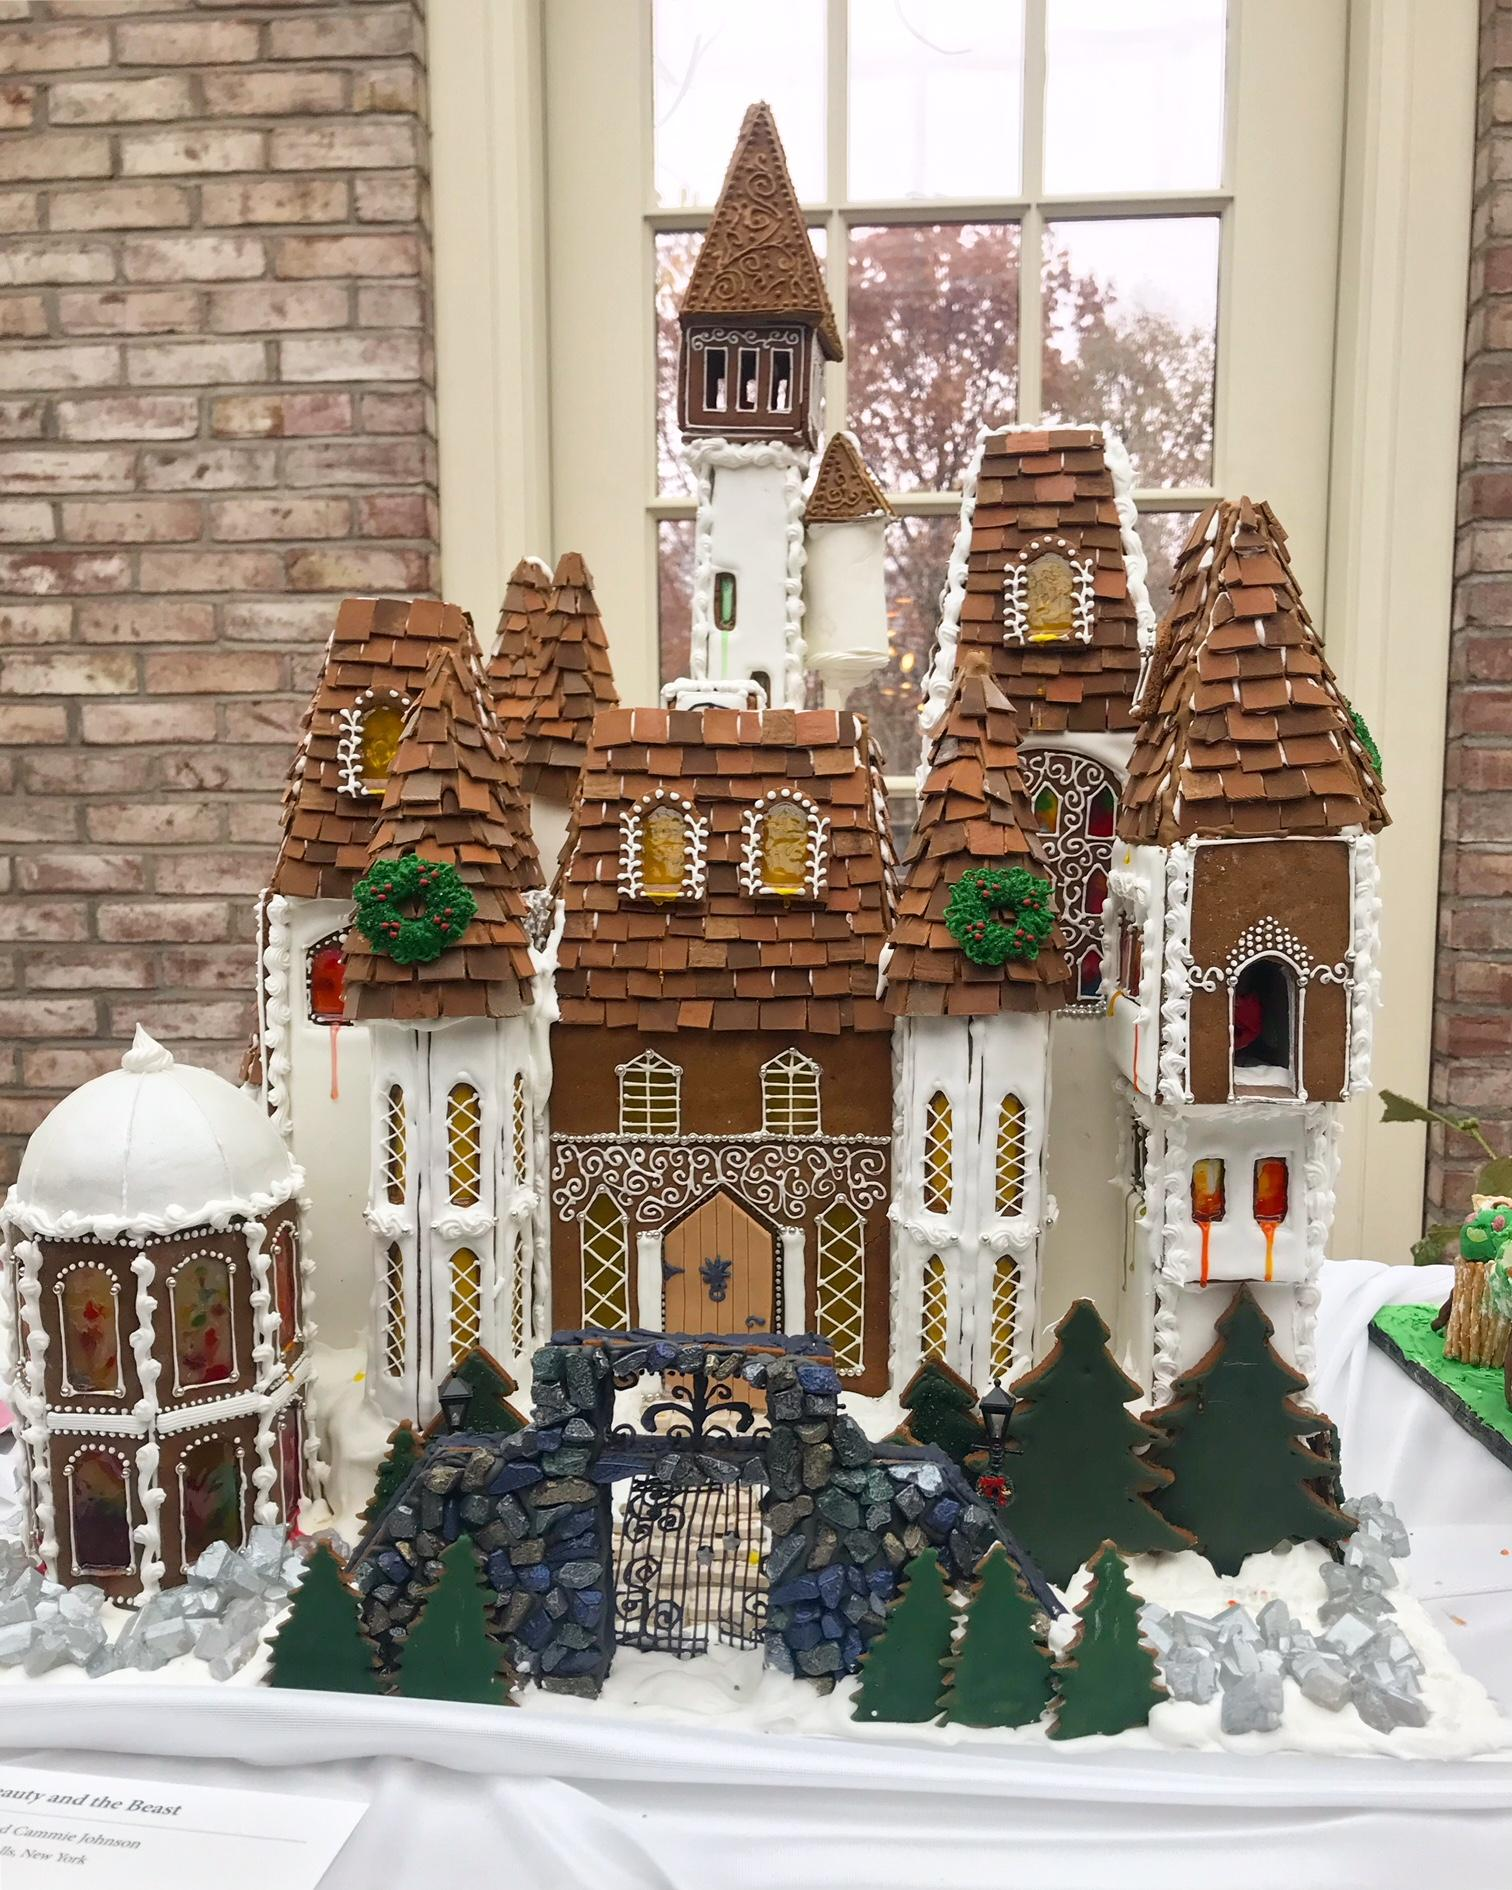 Experience Holiday Magic At The George Eastman Museum In Rochester, New York